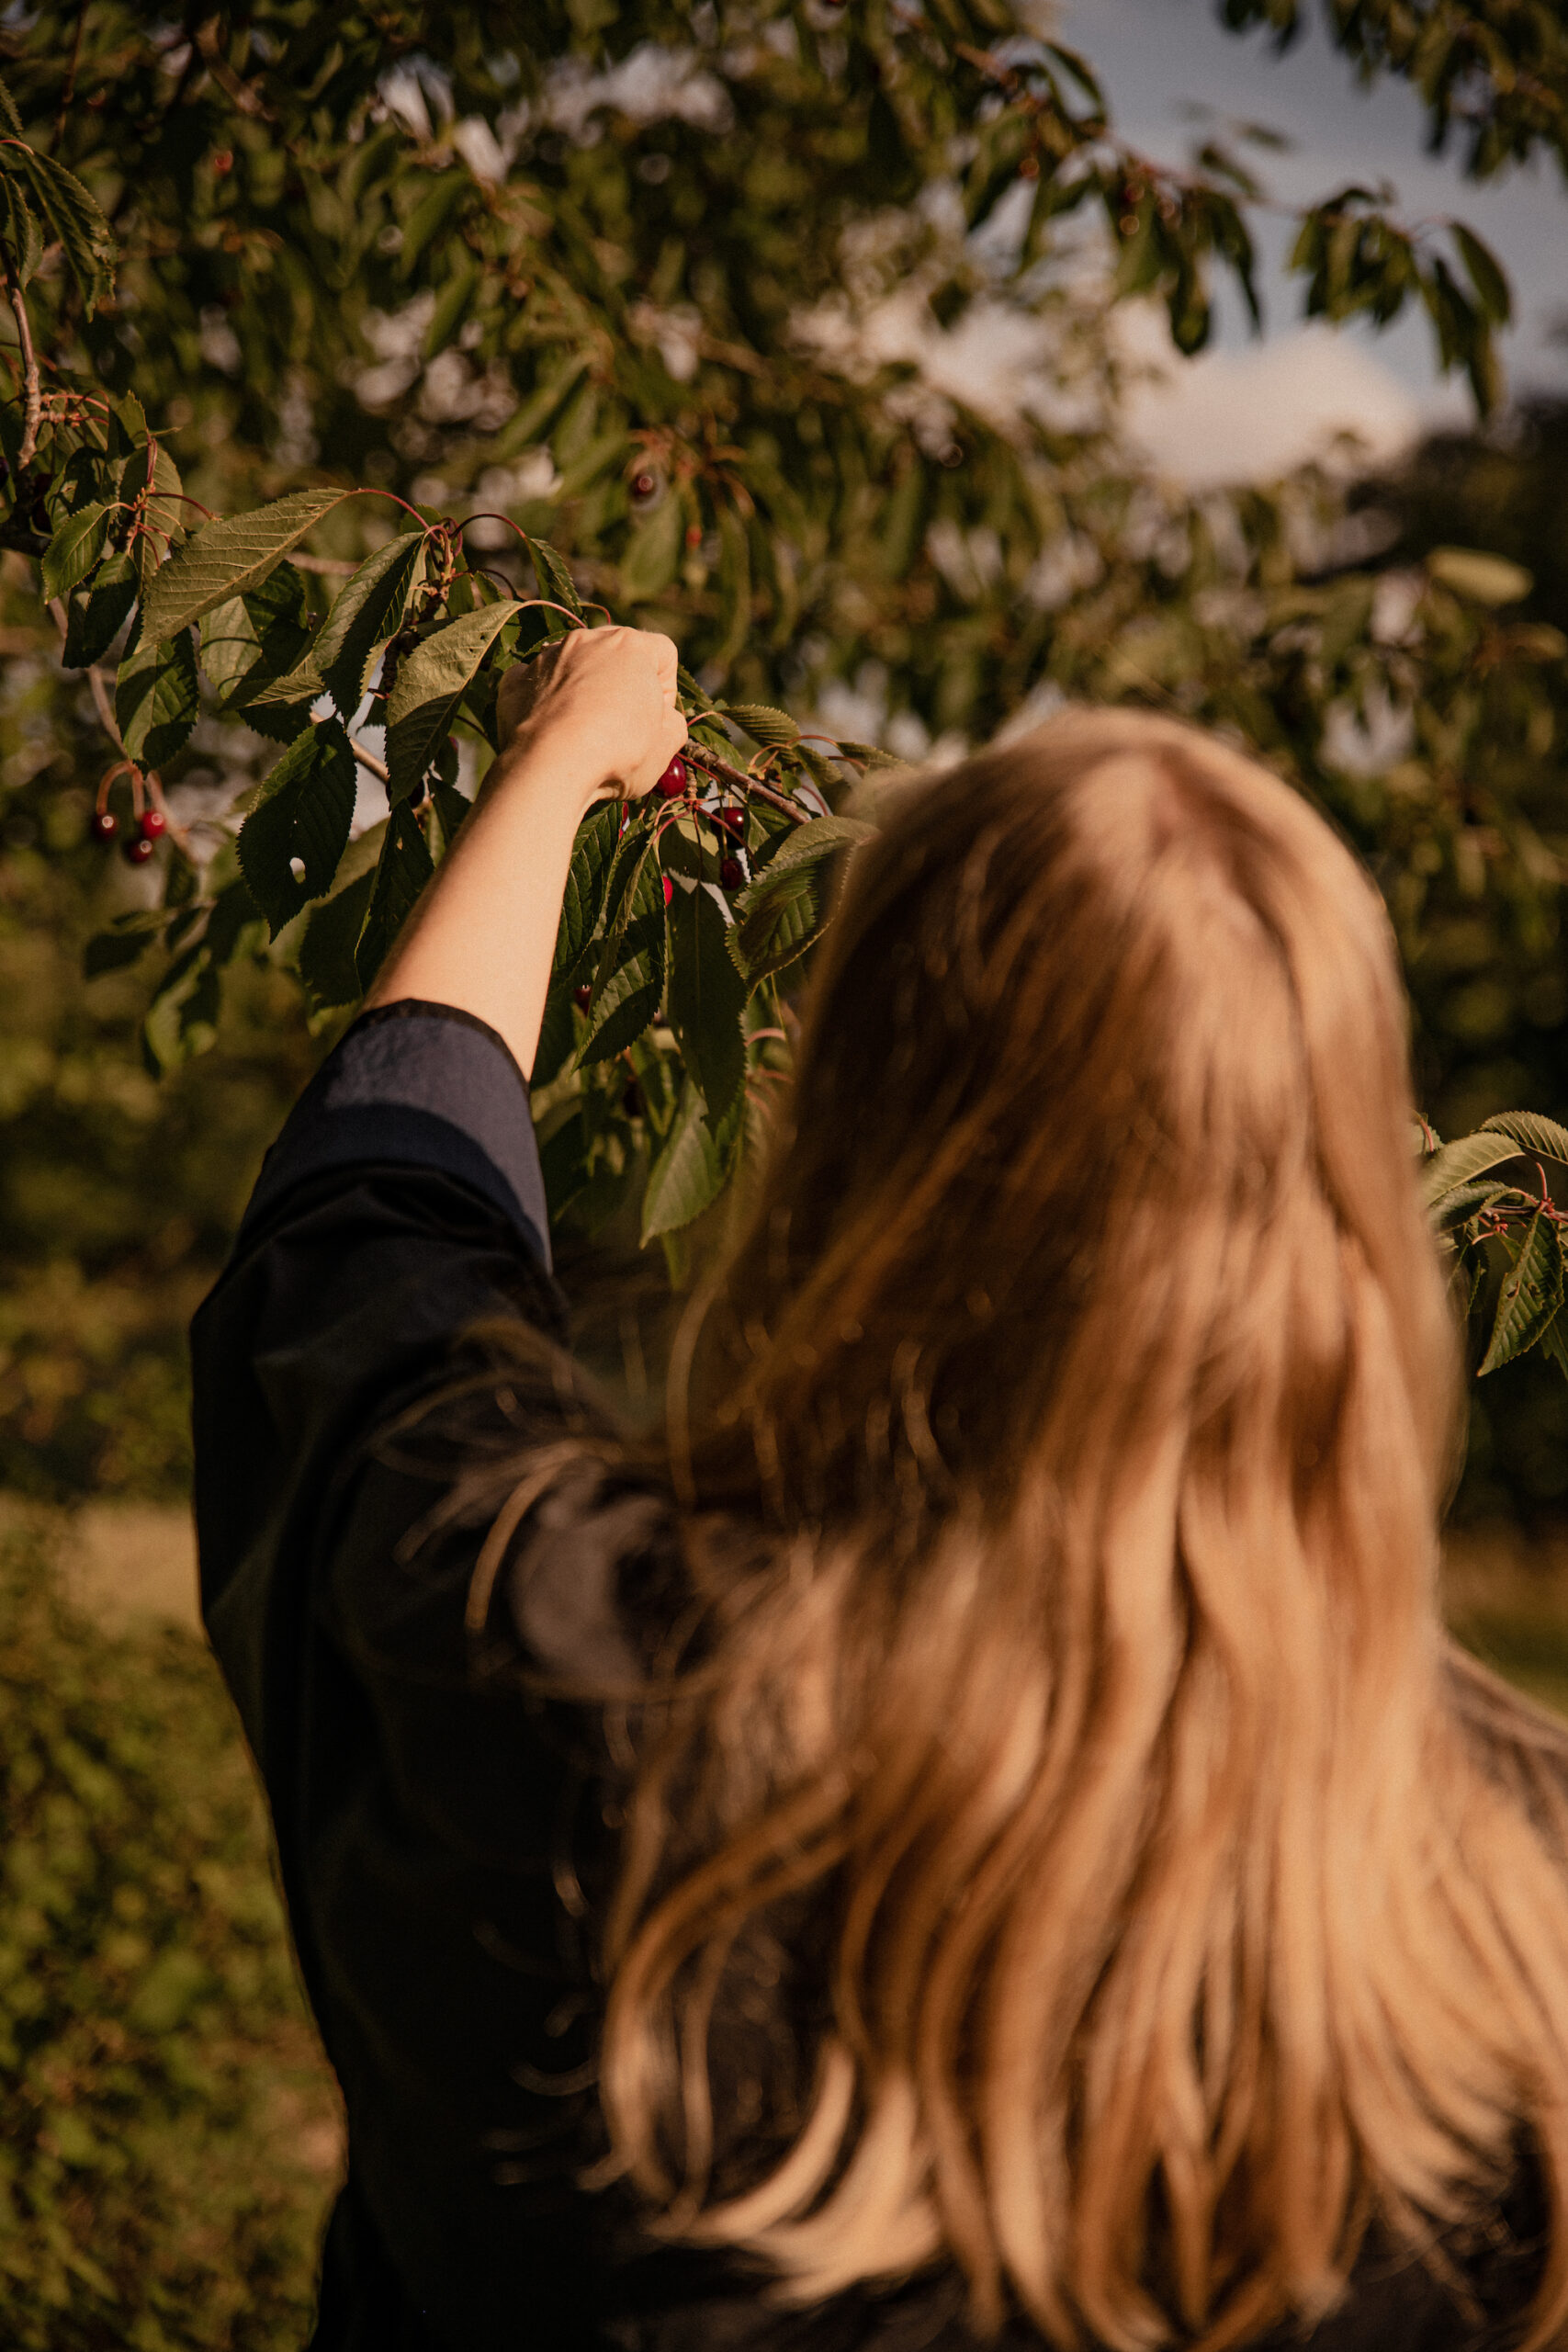 picking cherries for an cherry picking editorial about fashion